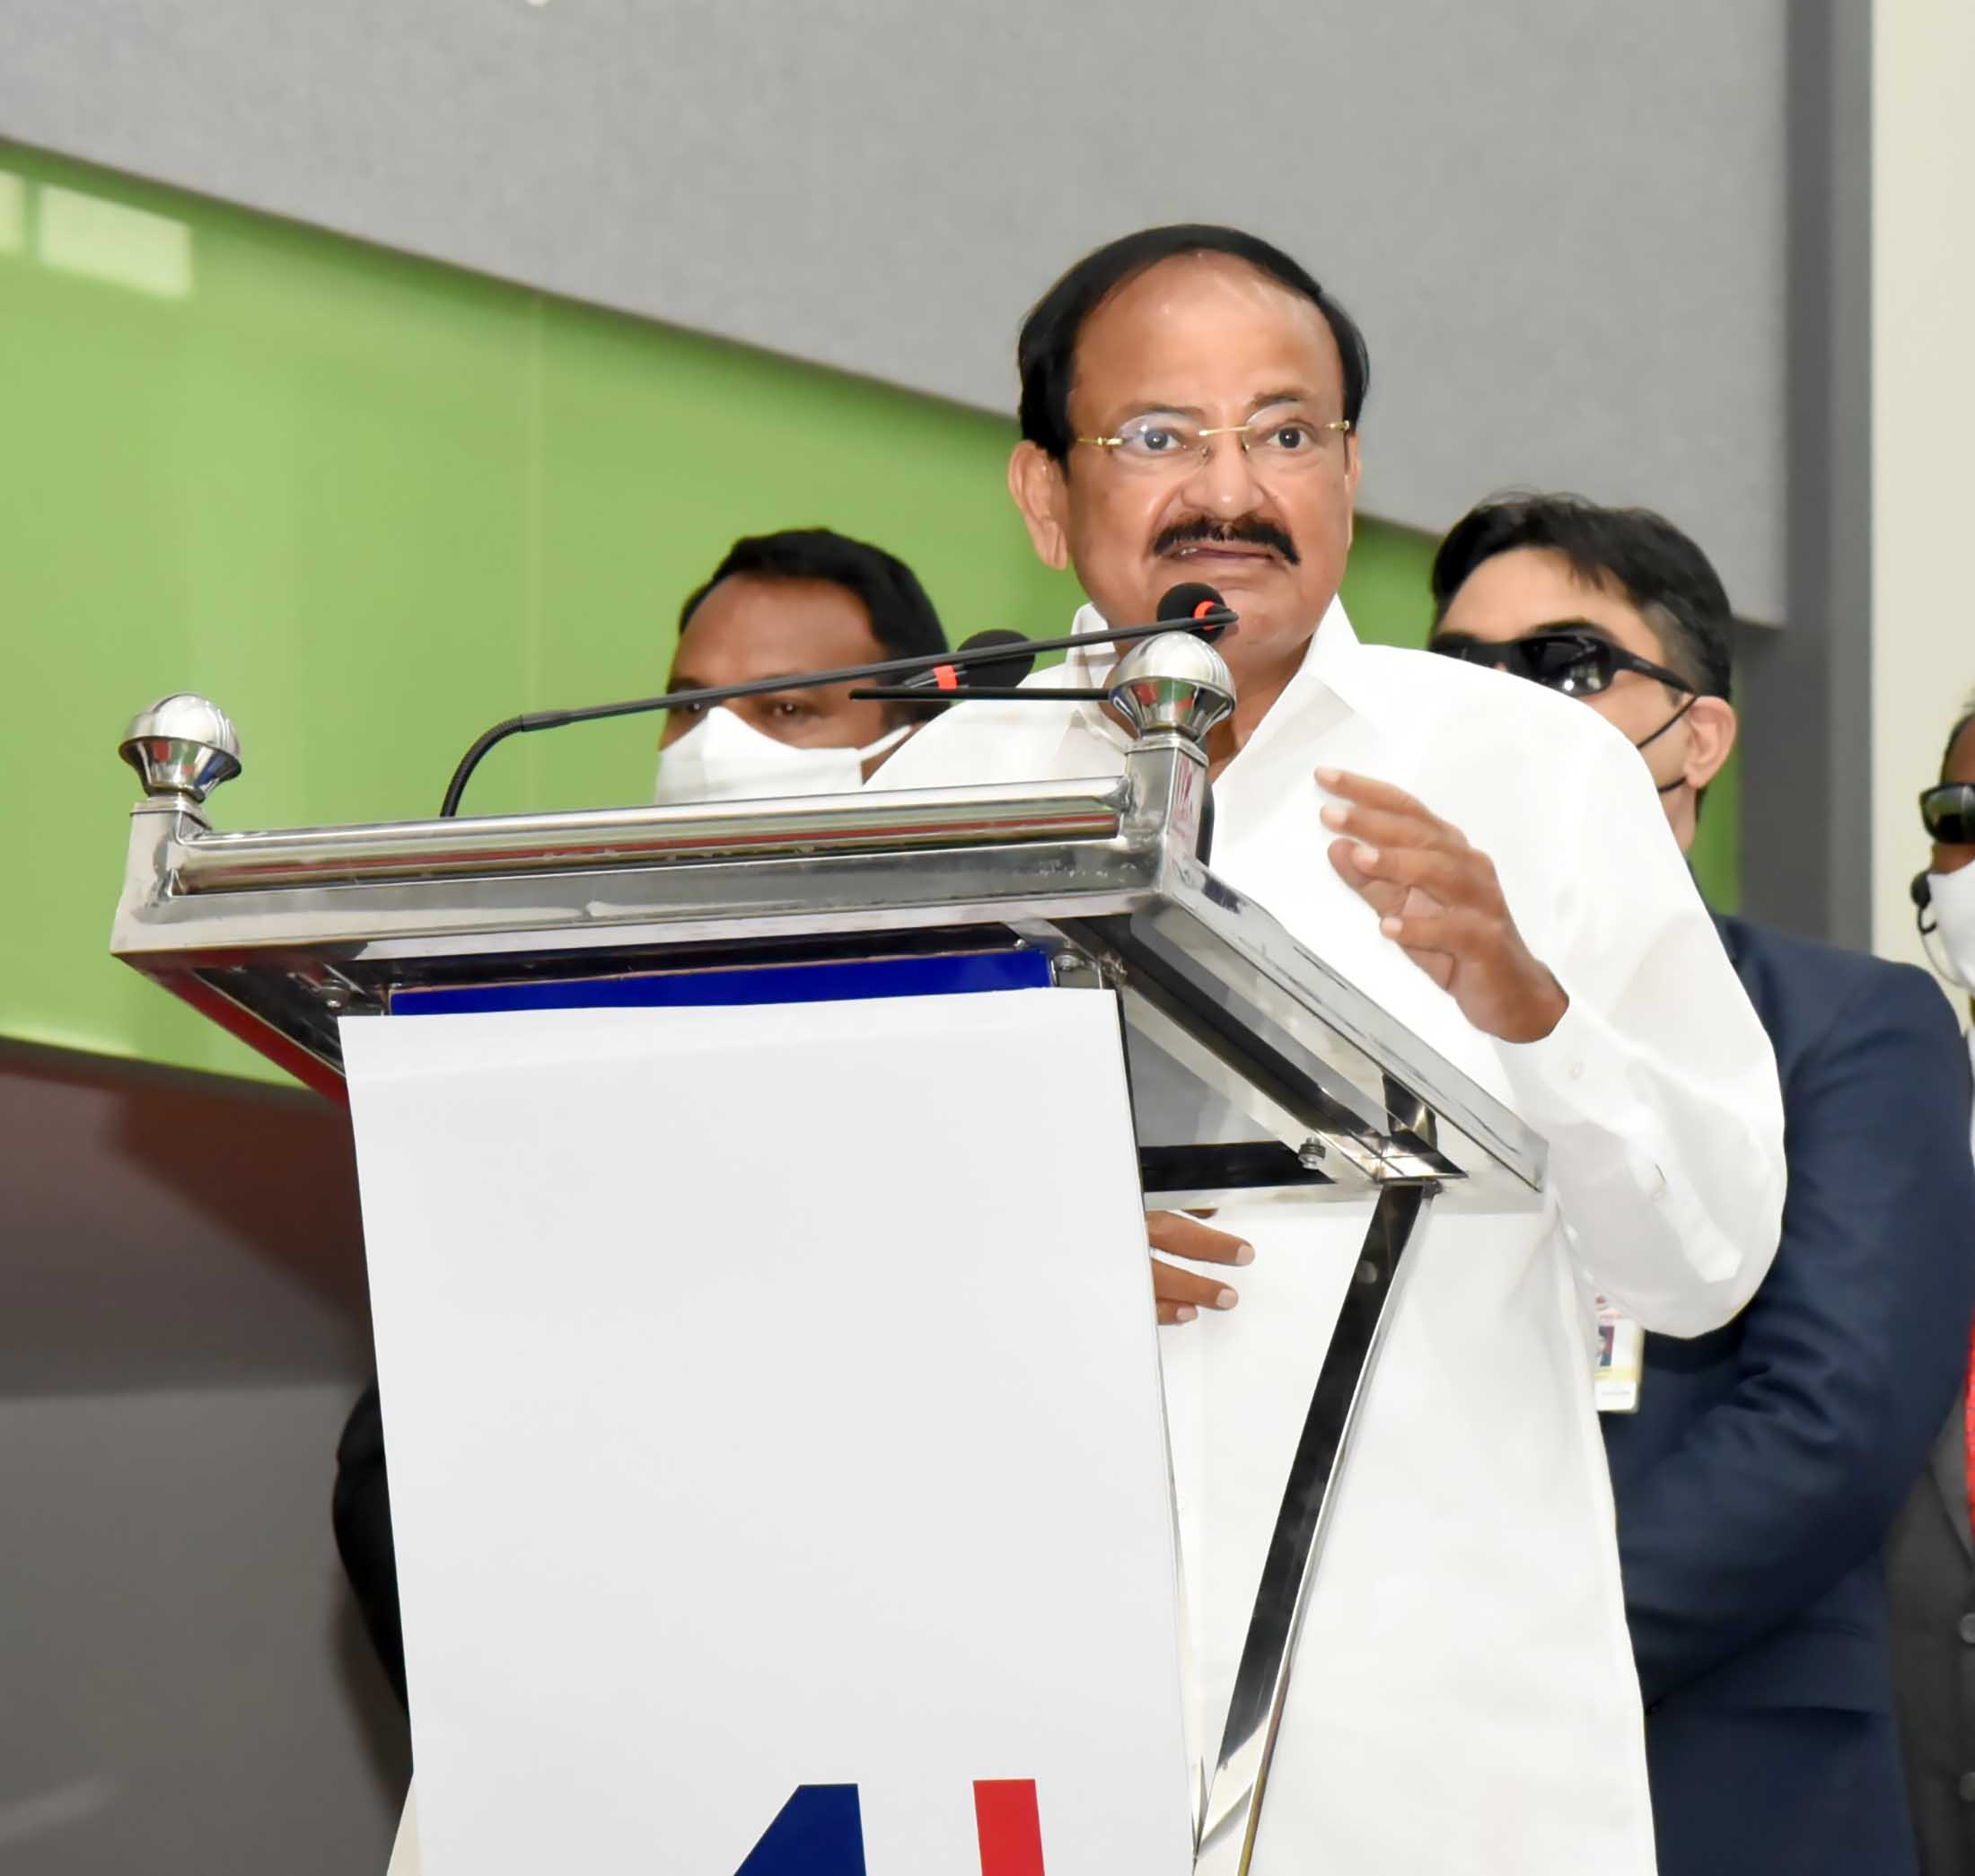 The Vice President, Shri M. Venkaiah Naidu addressing at the inauguration of the Amara Multispecialty Hospital, in Tirupati on March 04, 2021.